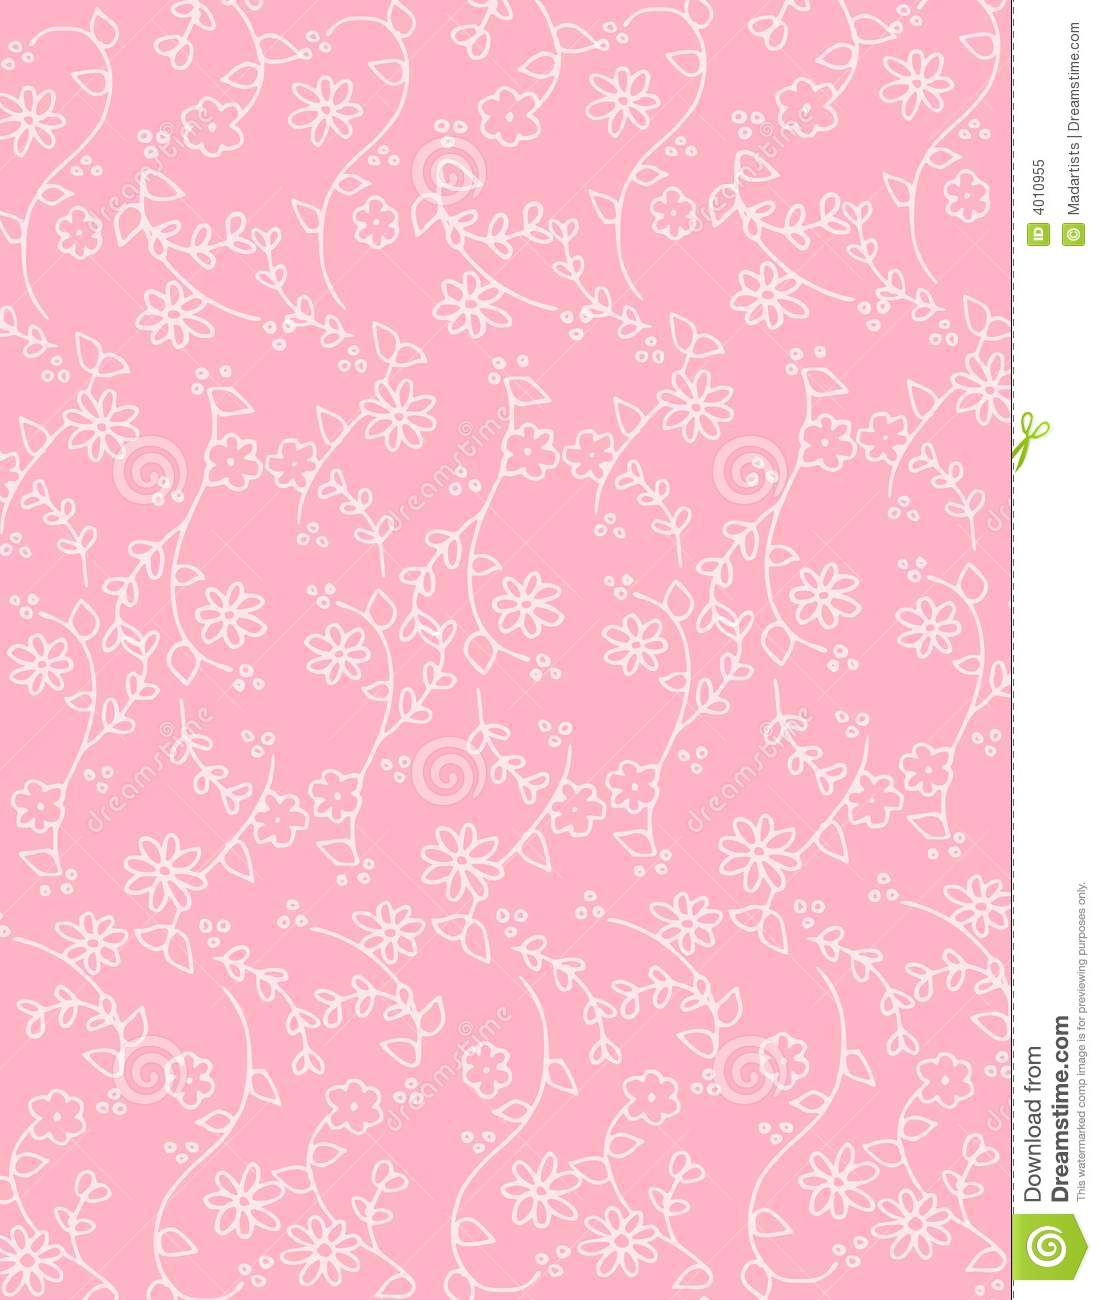 Pink spring flowers background pattern stock illustration pink spring flowers background pattern mightylinksfo